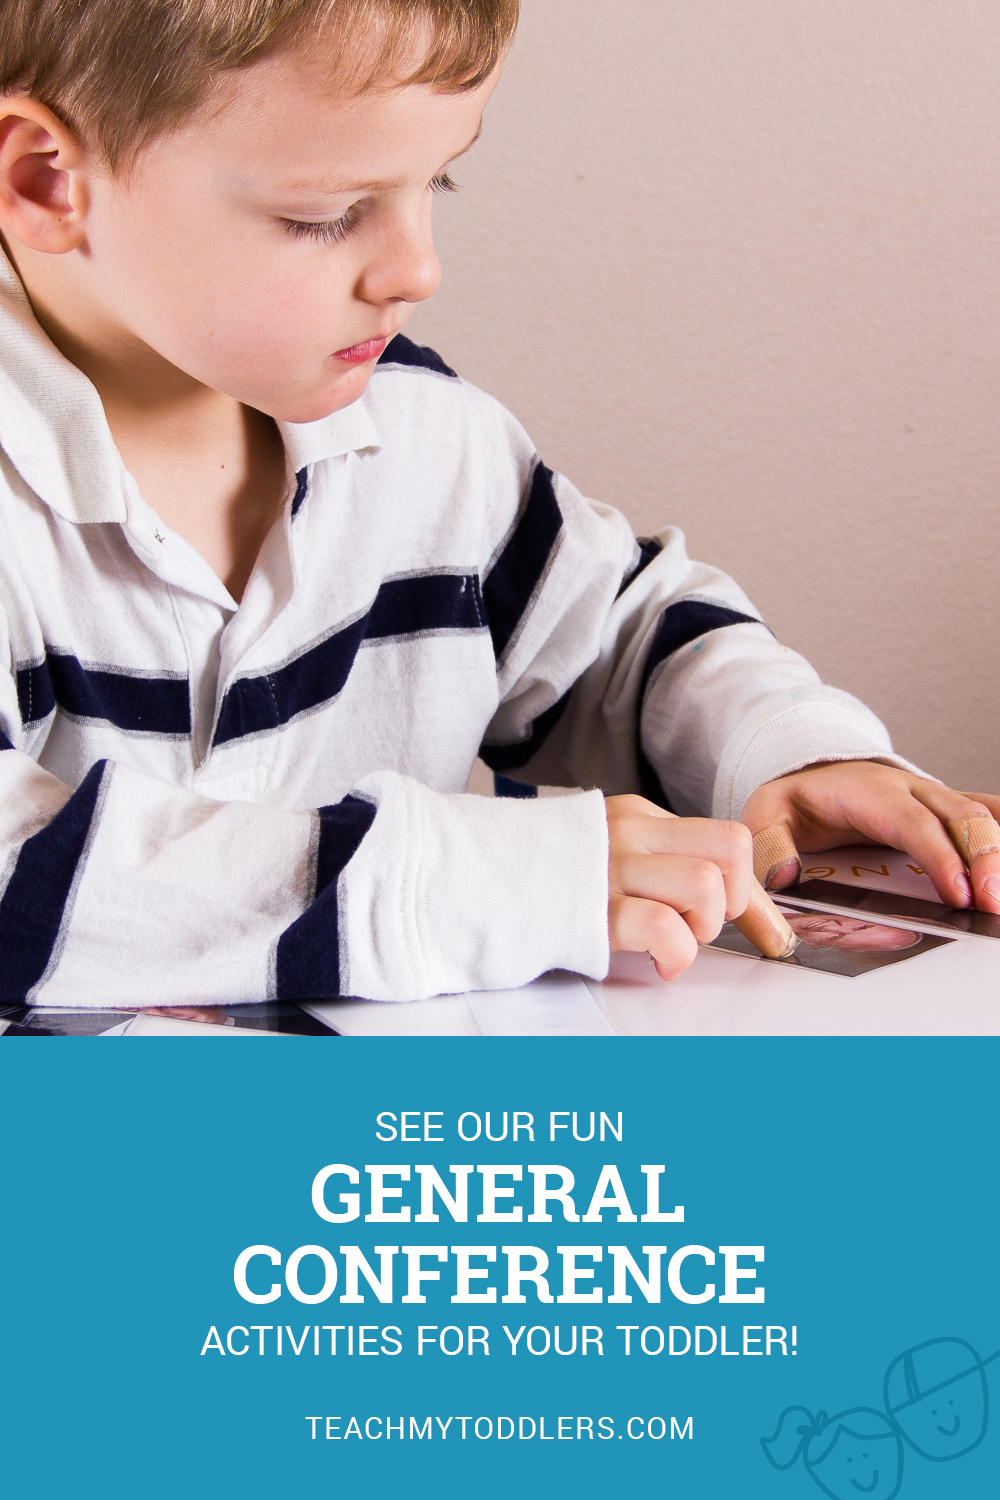 LDS General Conference Activities Teach Your Toddlers